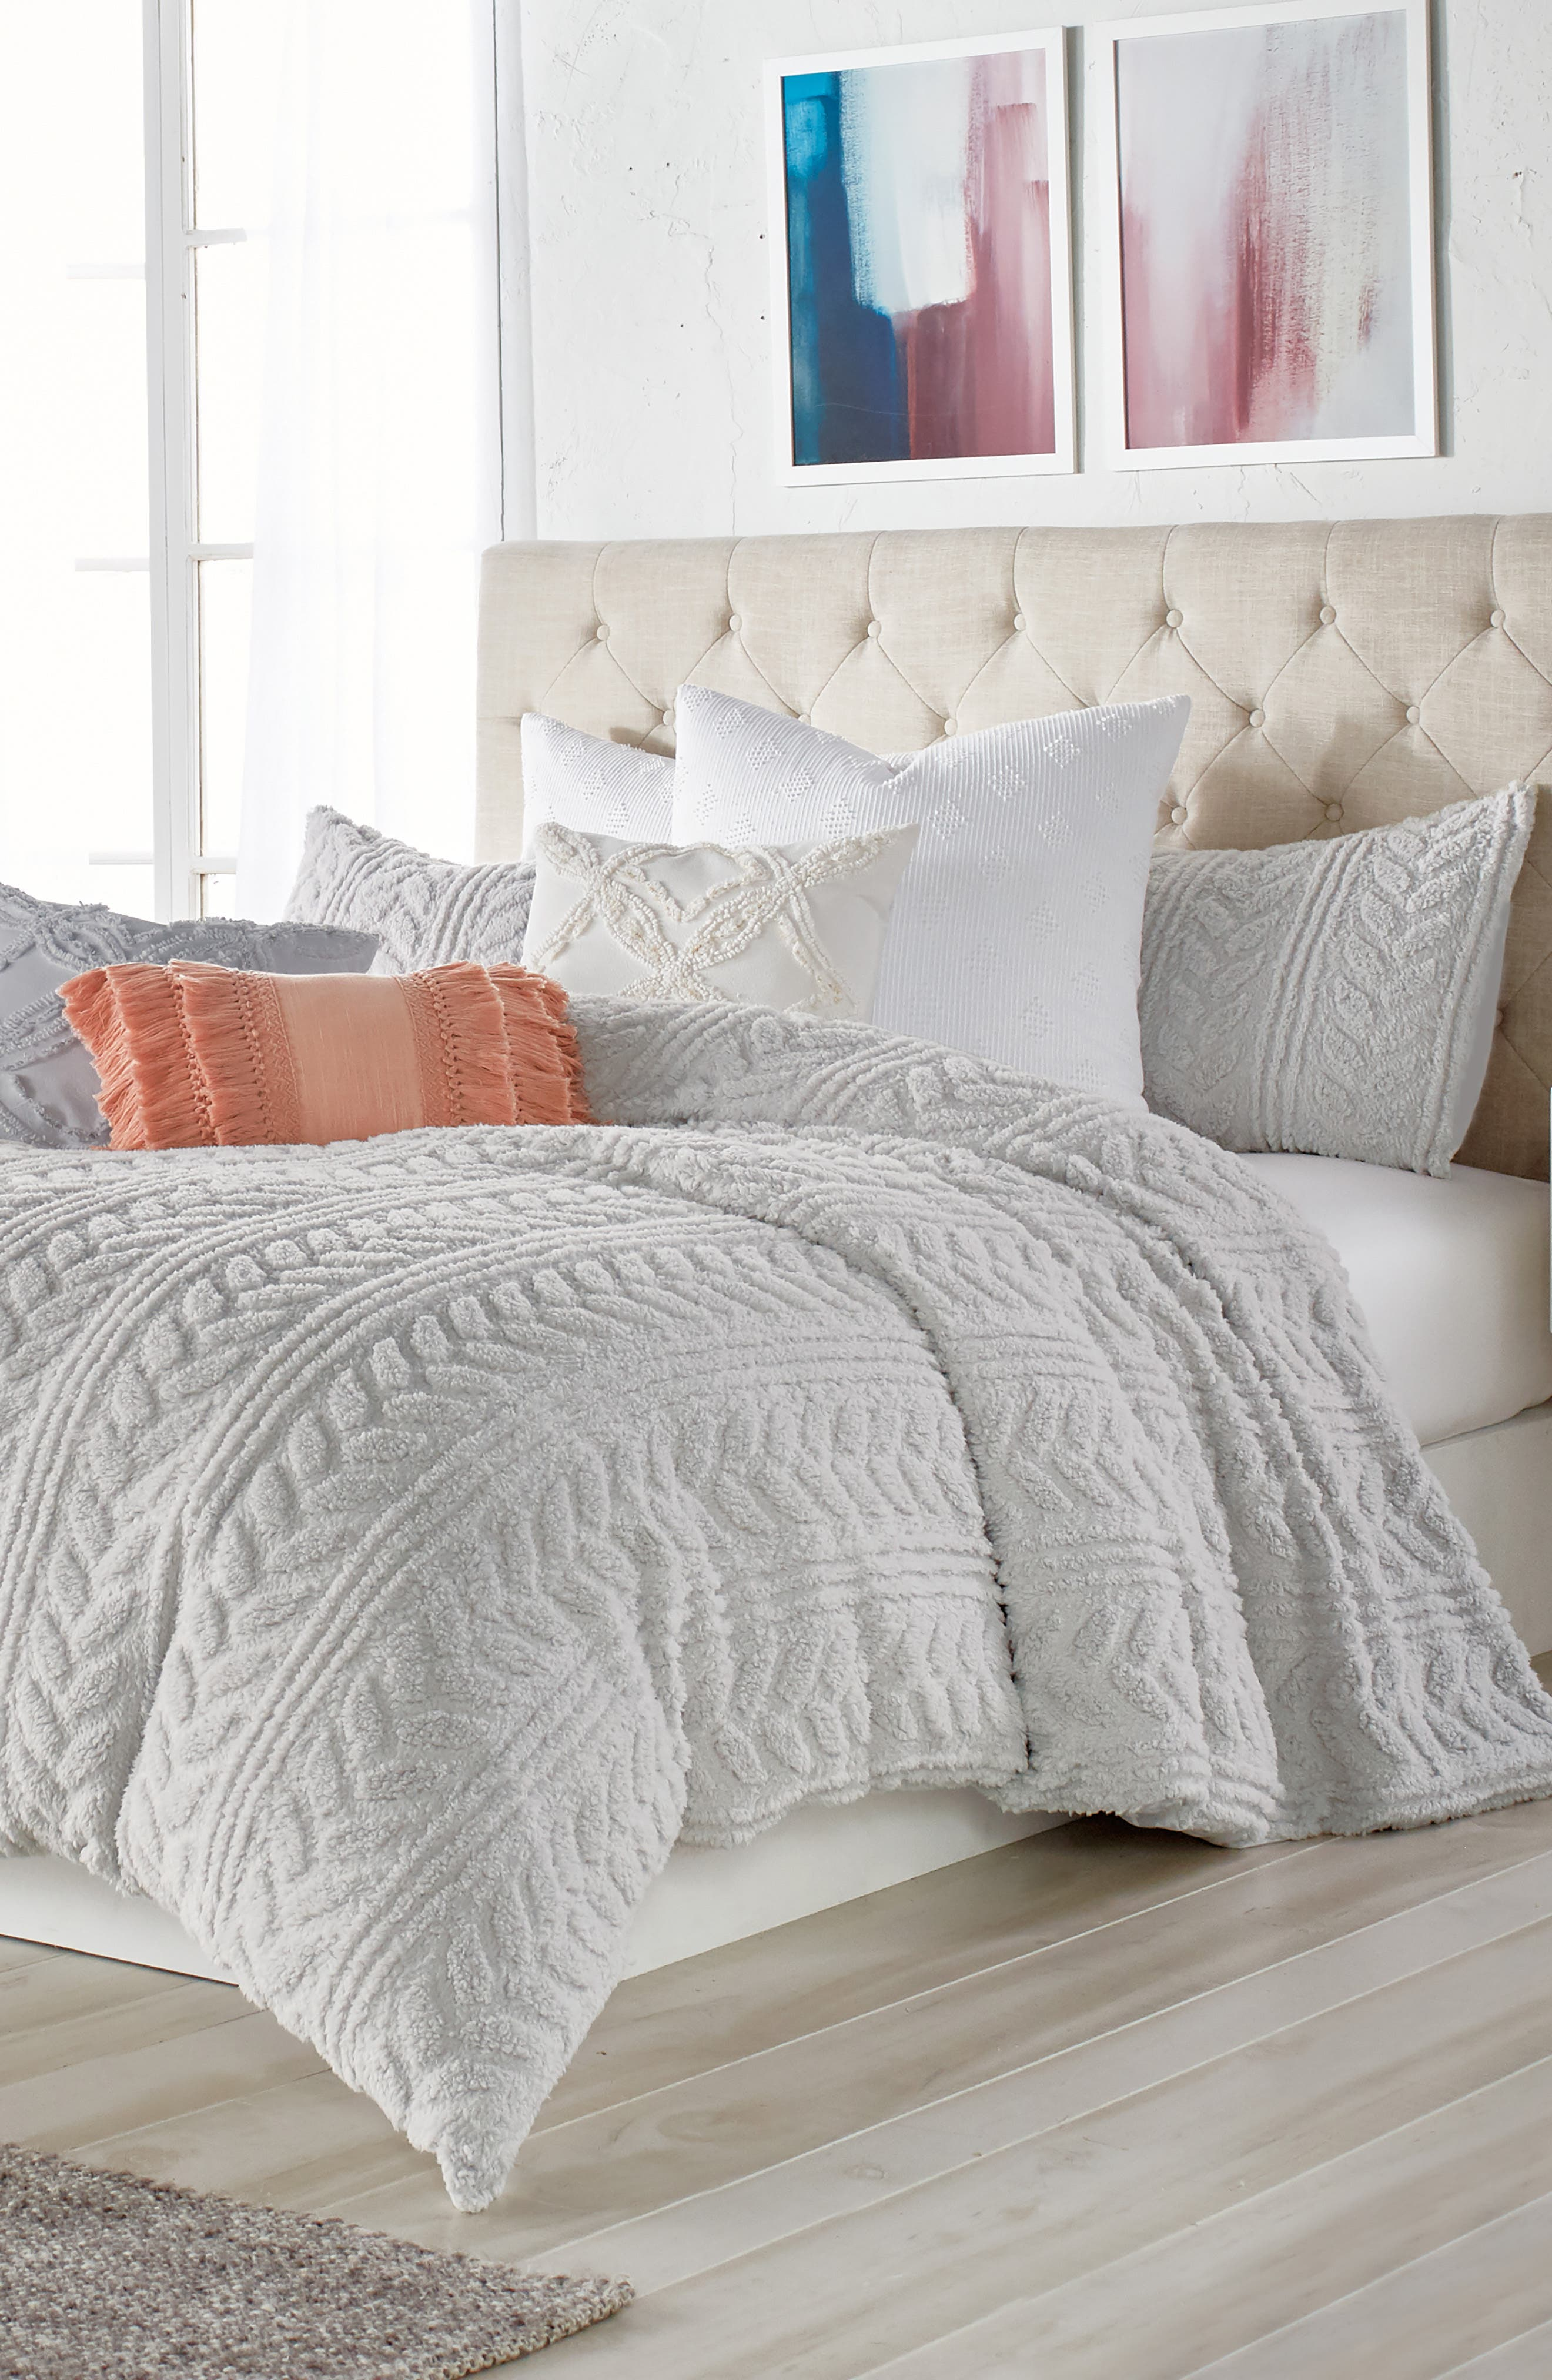 Peri Home Cable Knit High Pile Fleece Comforter U0026 Sham Set